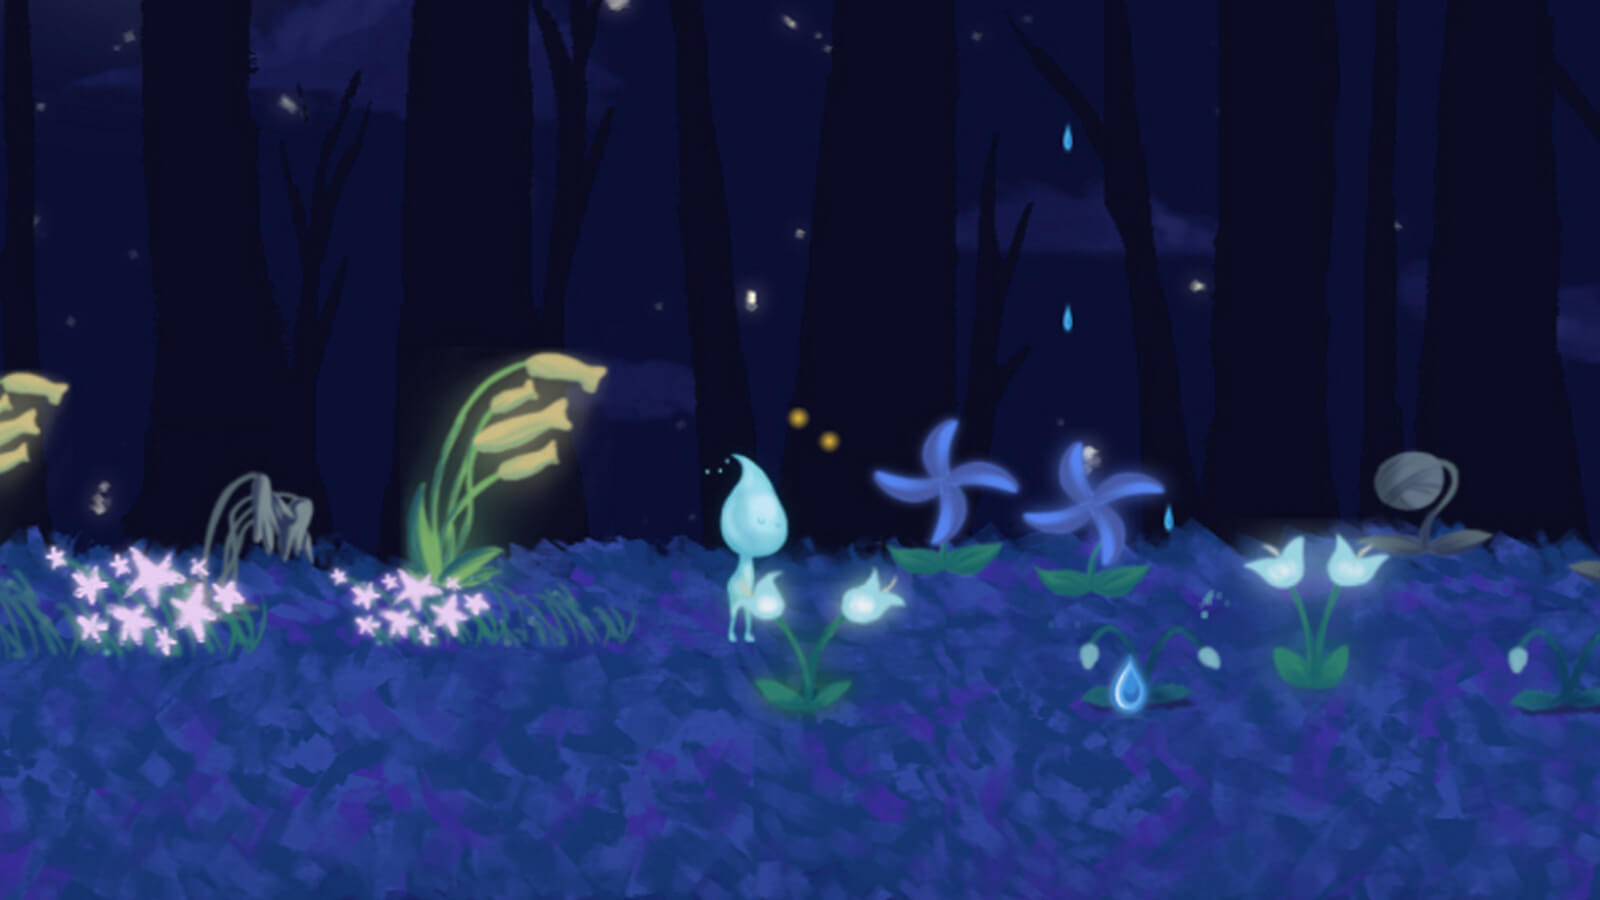 Douse, the raindrop main character of the game, walks among the flowers.